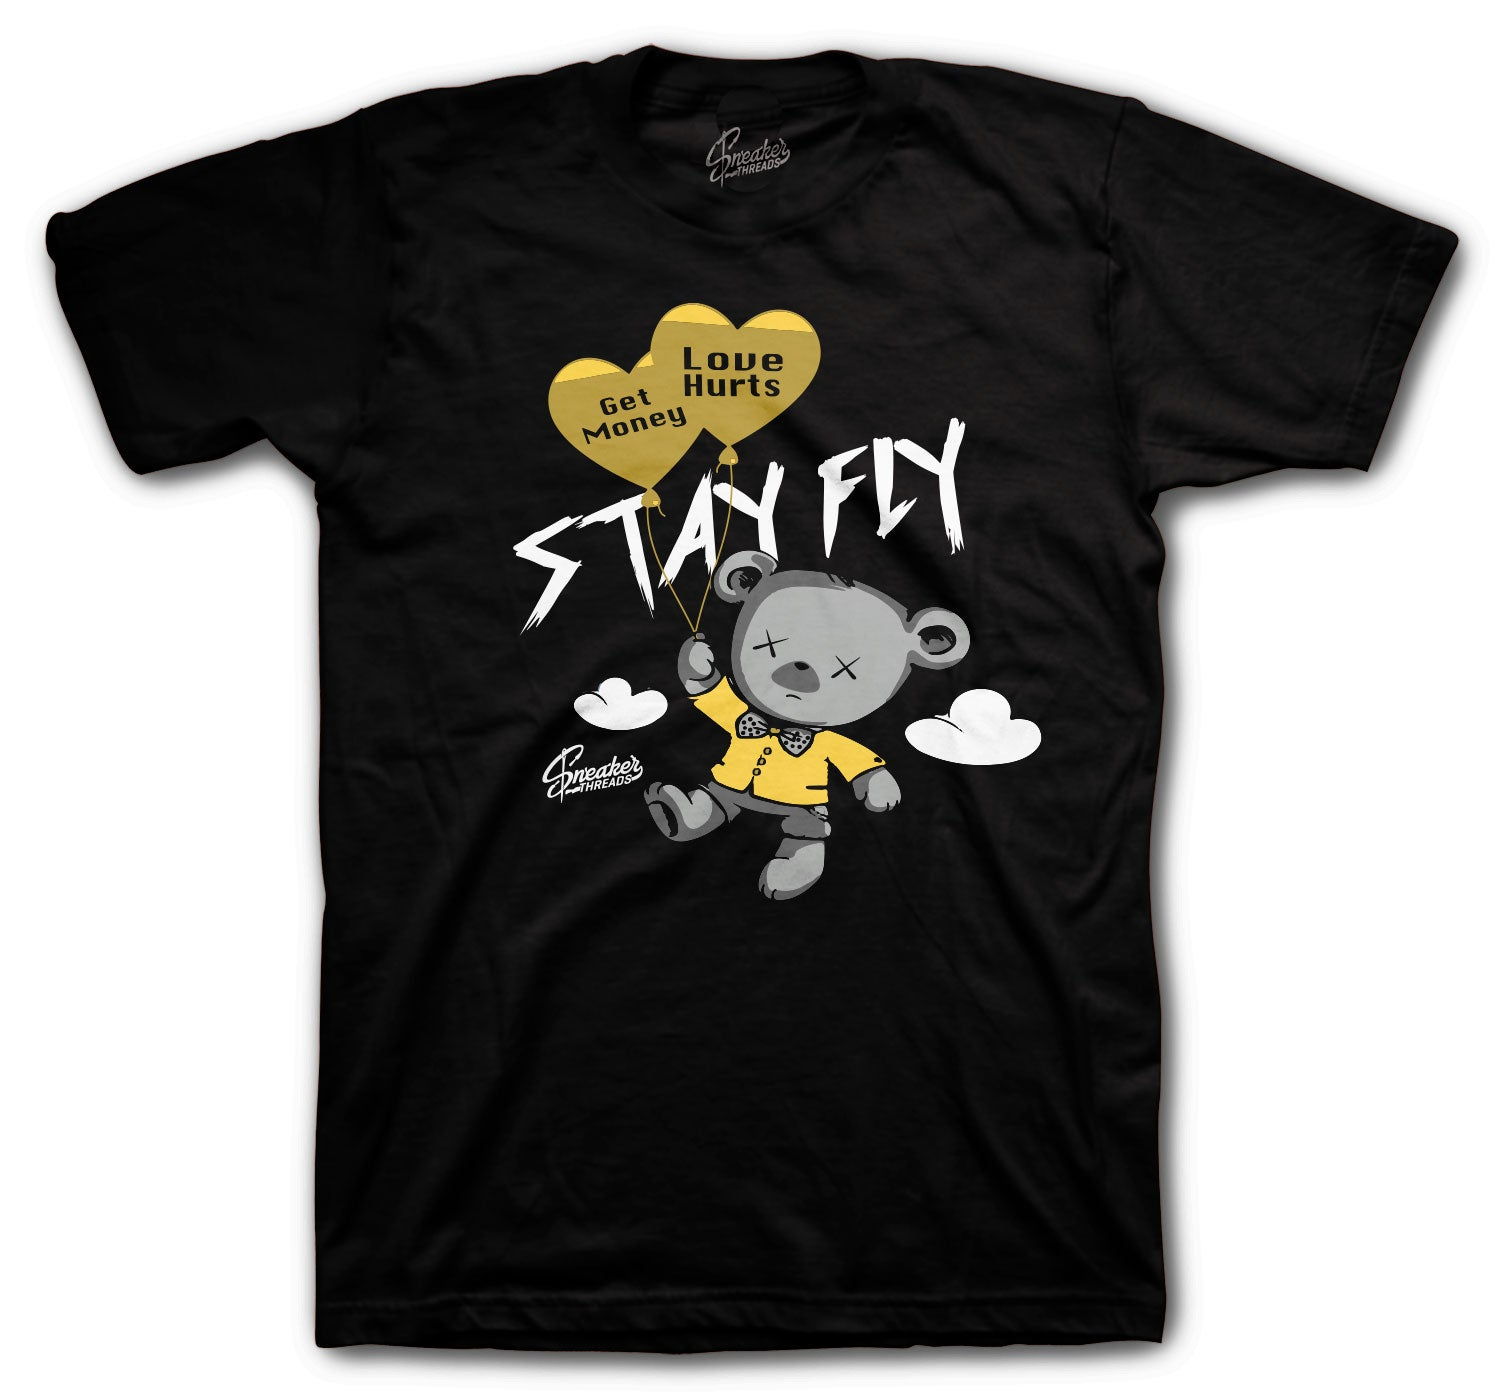 T shirts for guys matching with Jordan 1 black gold sneaker collection